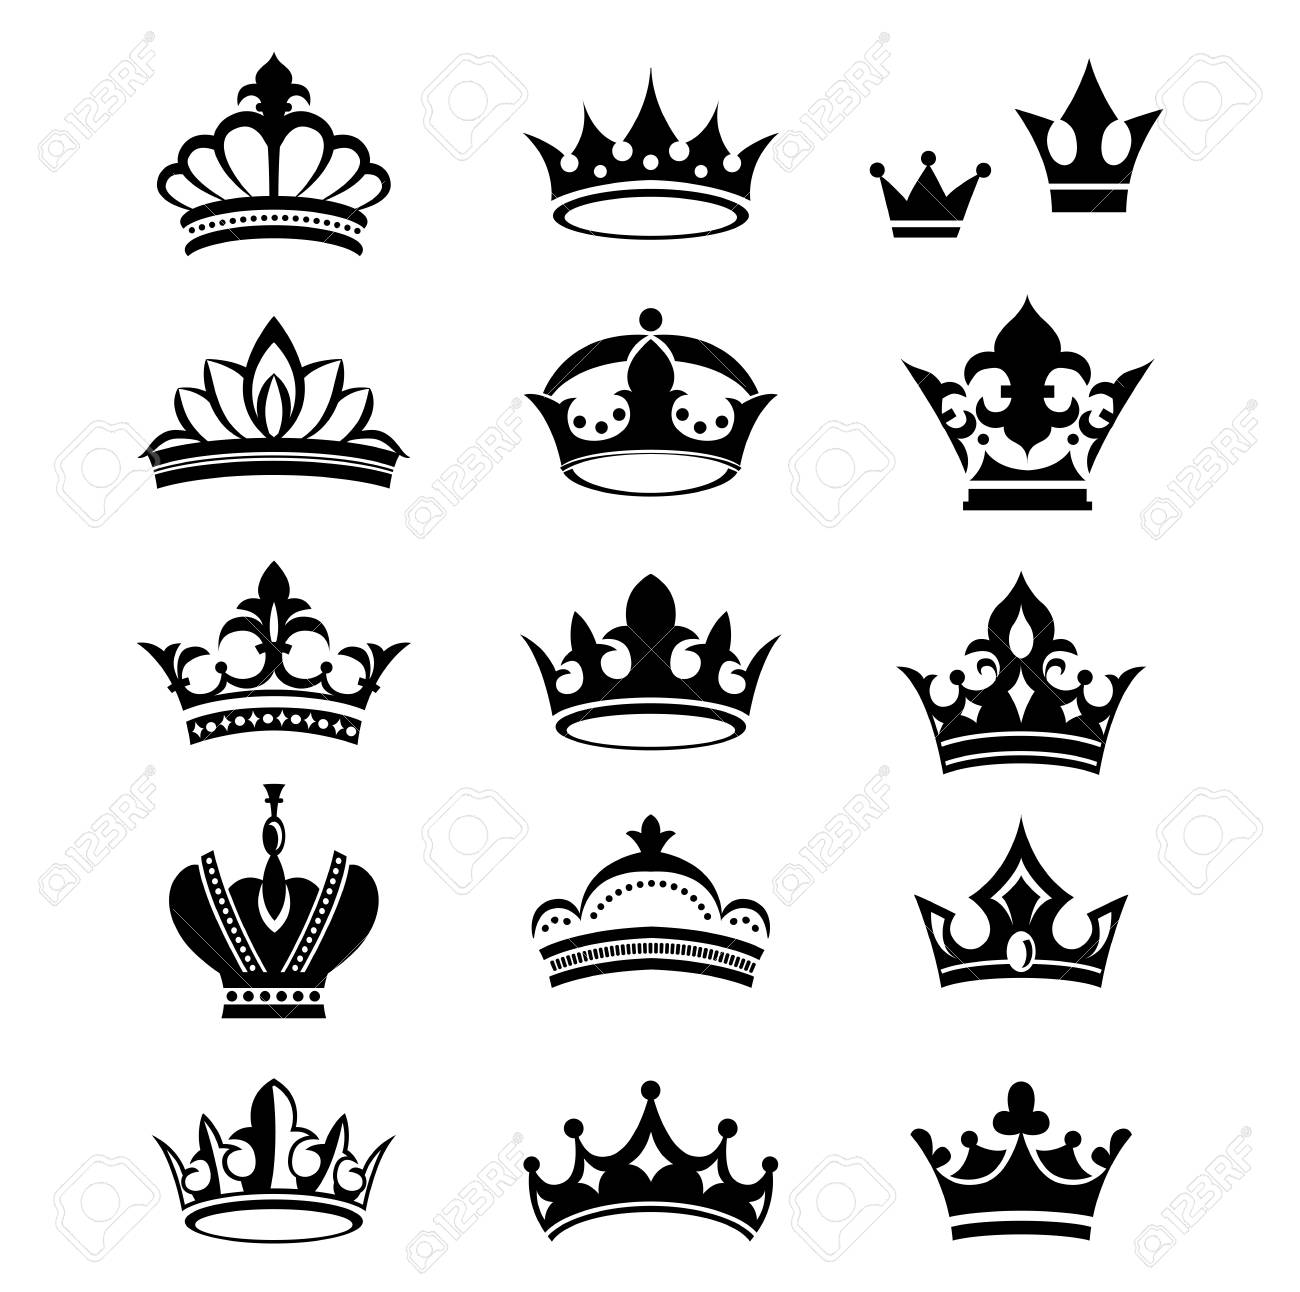 Collection Of Crown Silhouette Symbols Royalty Free Cliparts Vectors And Stock Illustration Image 115150793 Choose from 70000+ crown silhouette graphic resources and download in the form of png, eps, ai or psd. collection of crown silhouette symbols